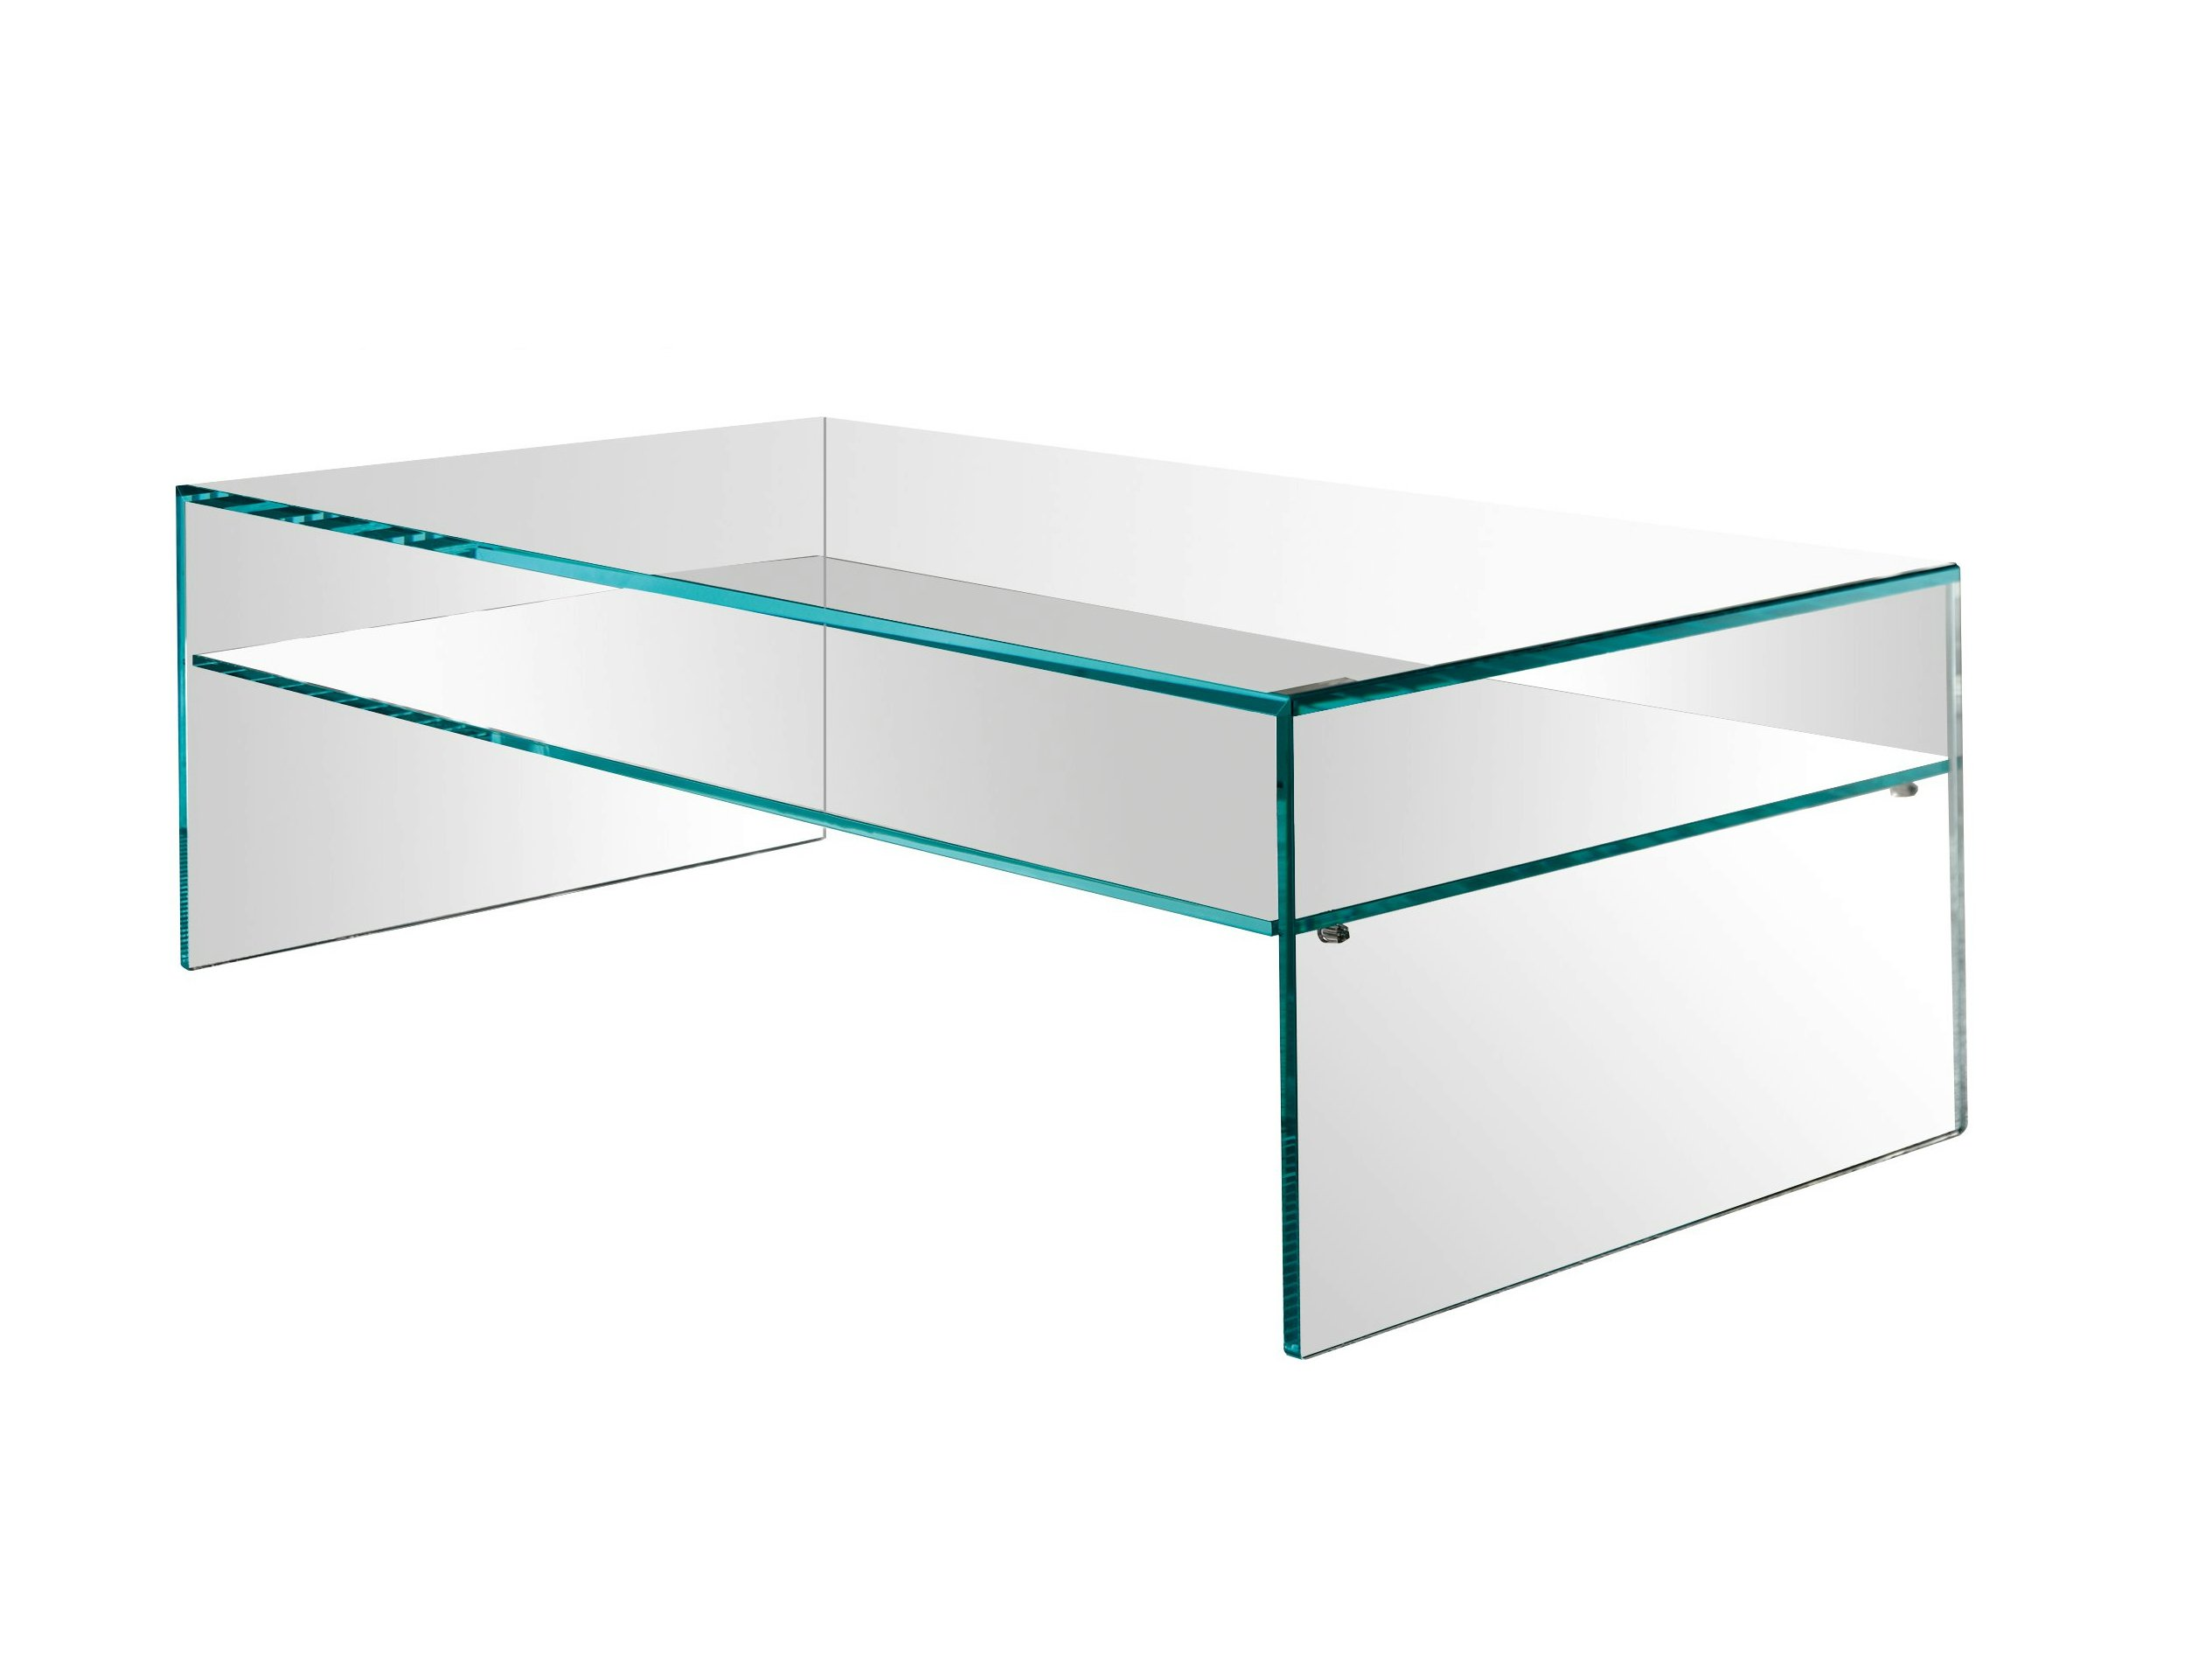 table basse rectangulaire en verre fratina due by t d tonelli design. Black Bedroom Furniture Sets. Home Design Ideas